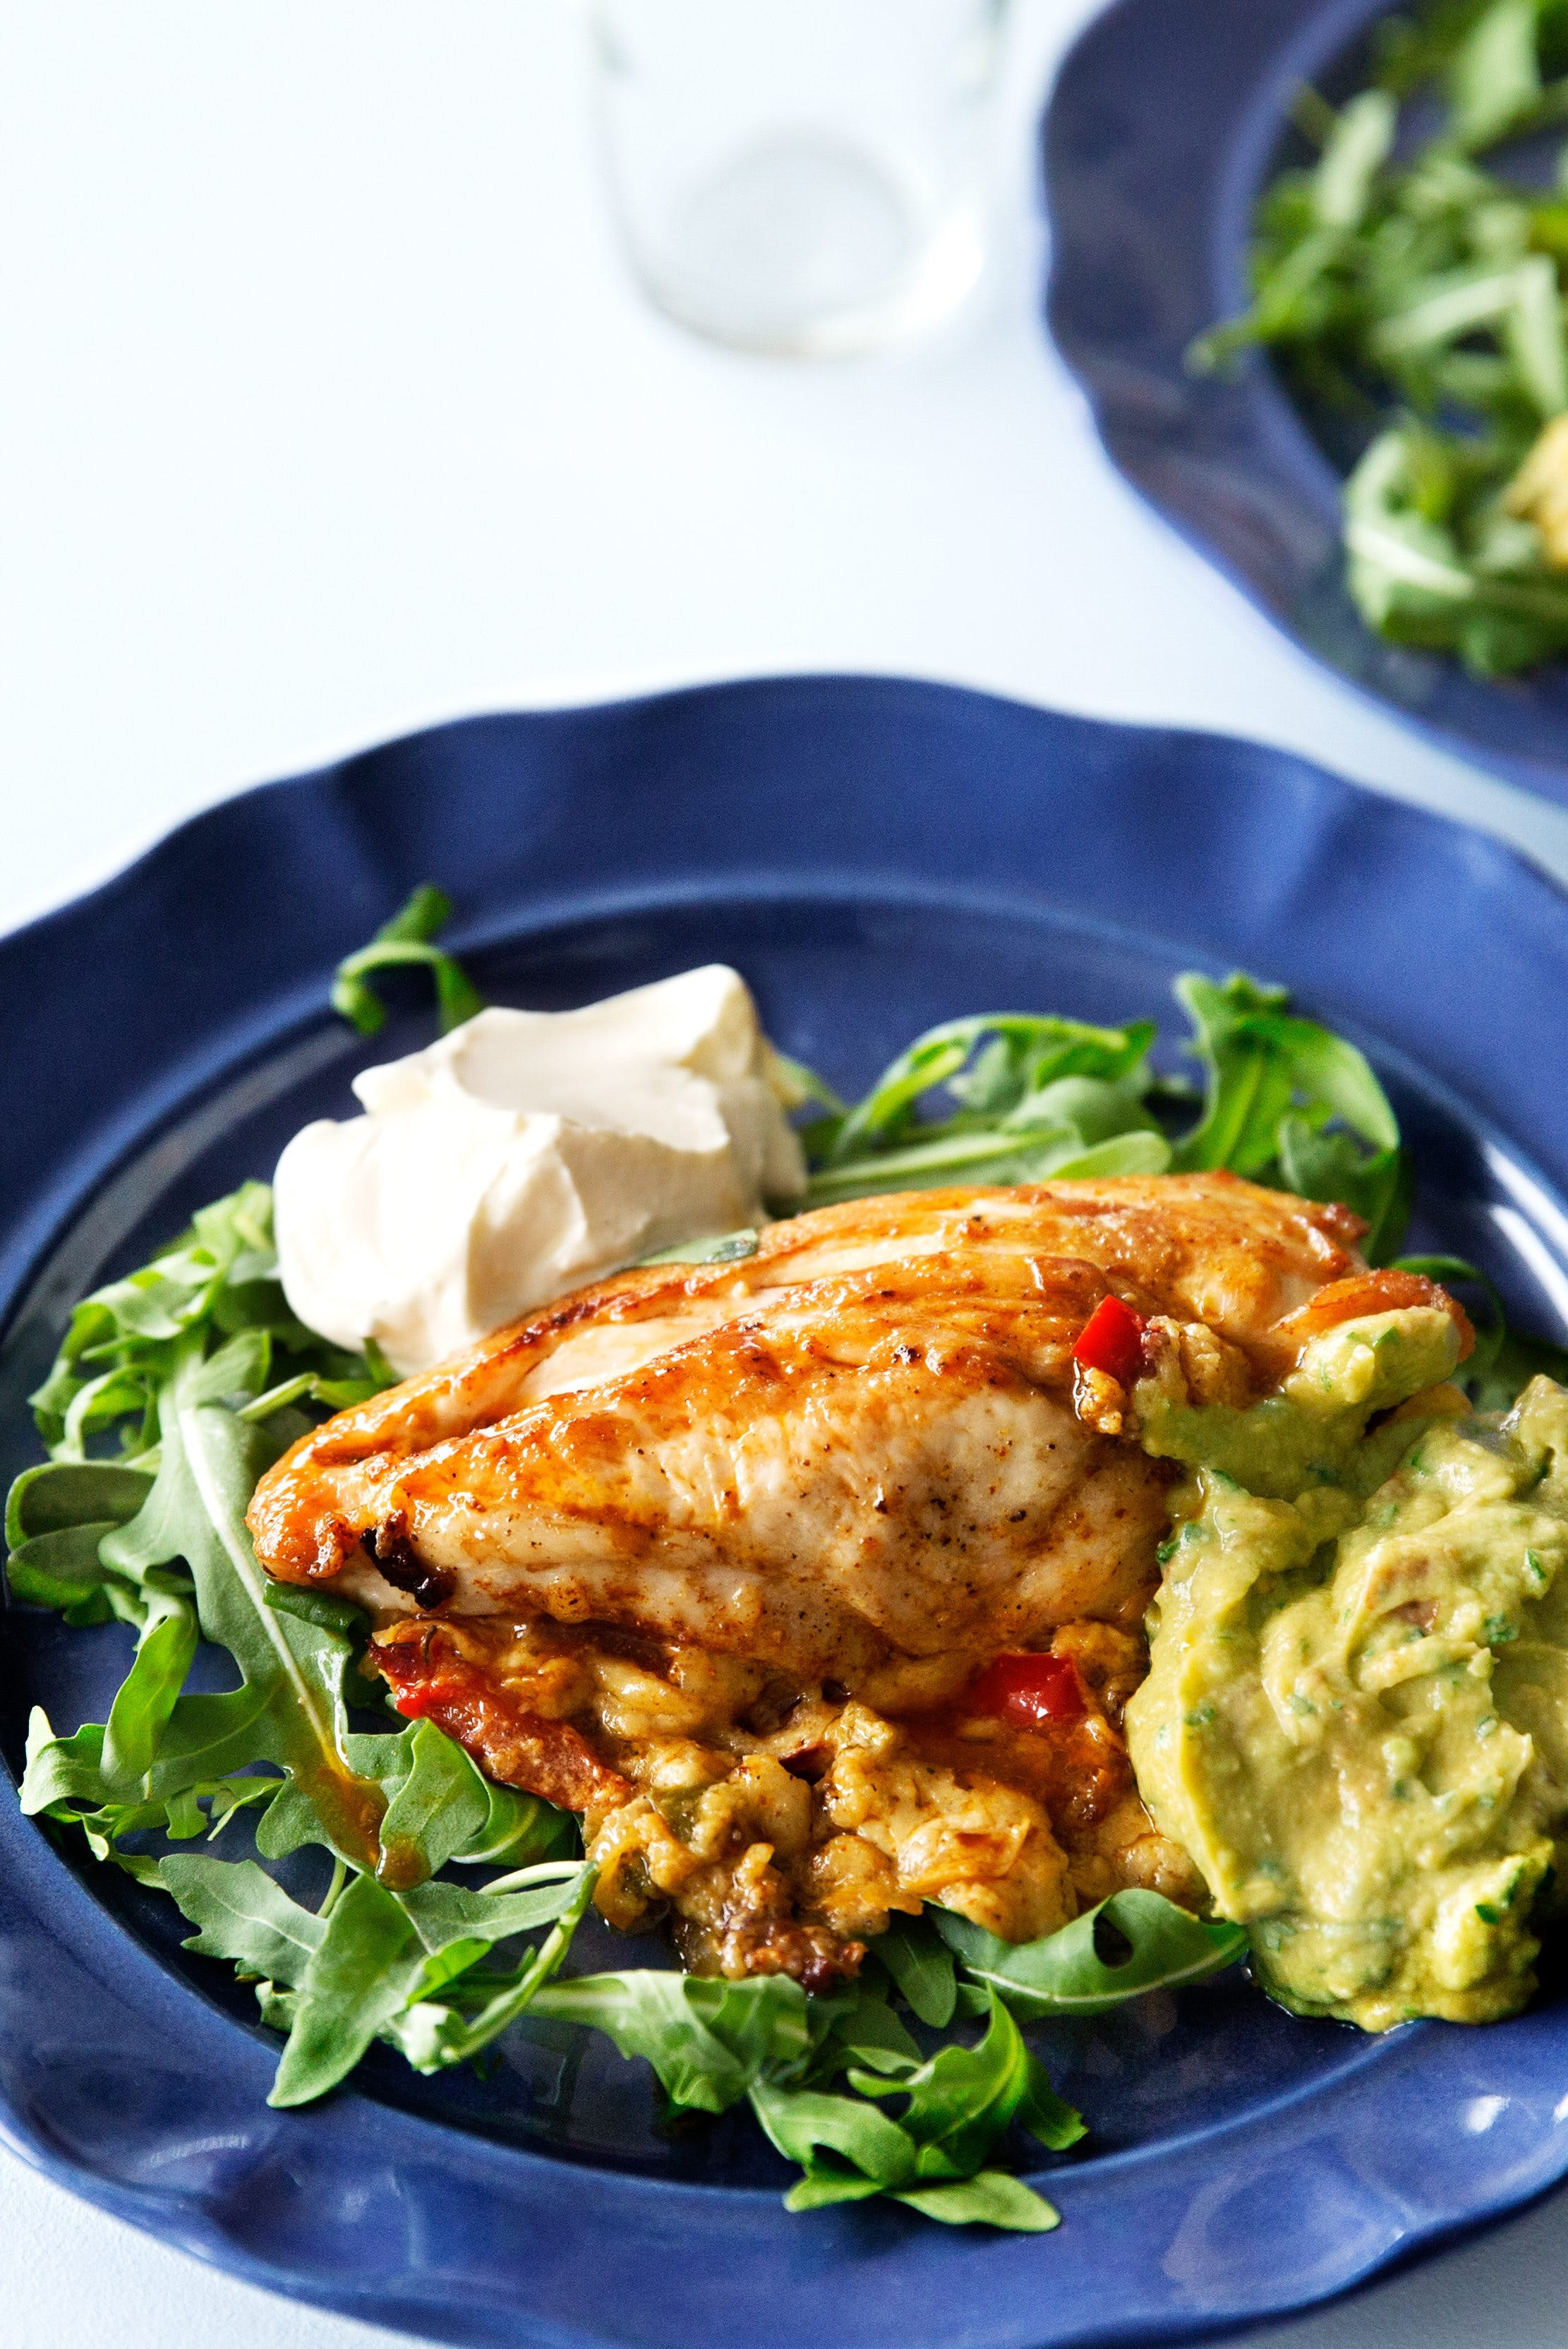 Cheese-filled chicken breast with guacamole